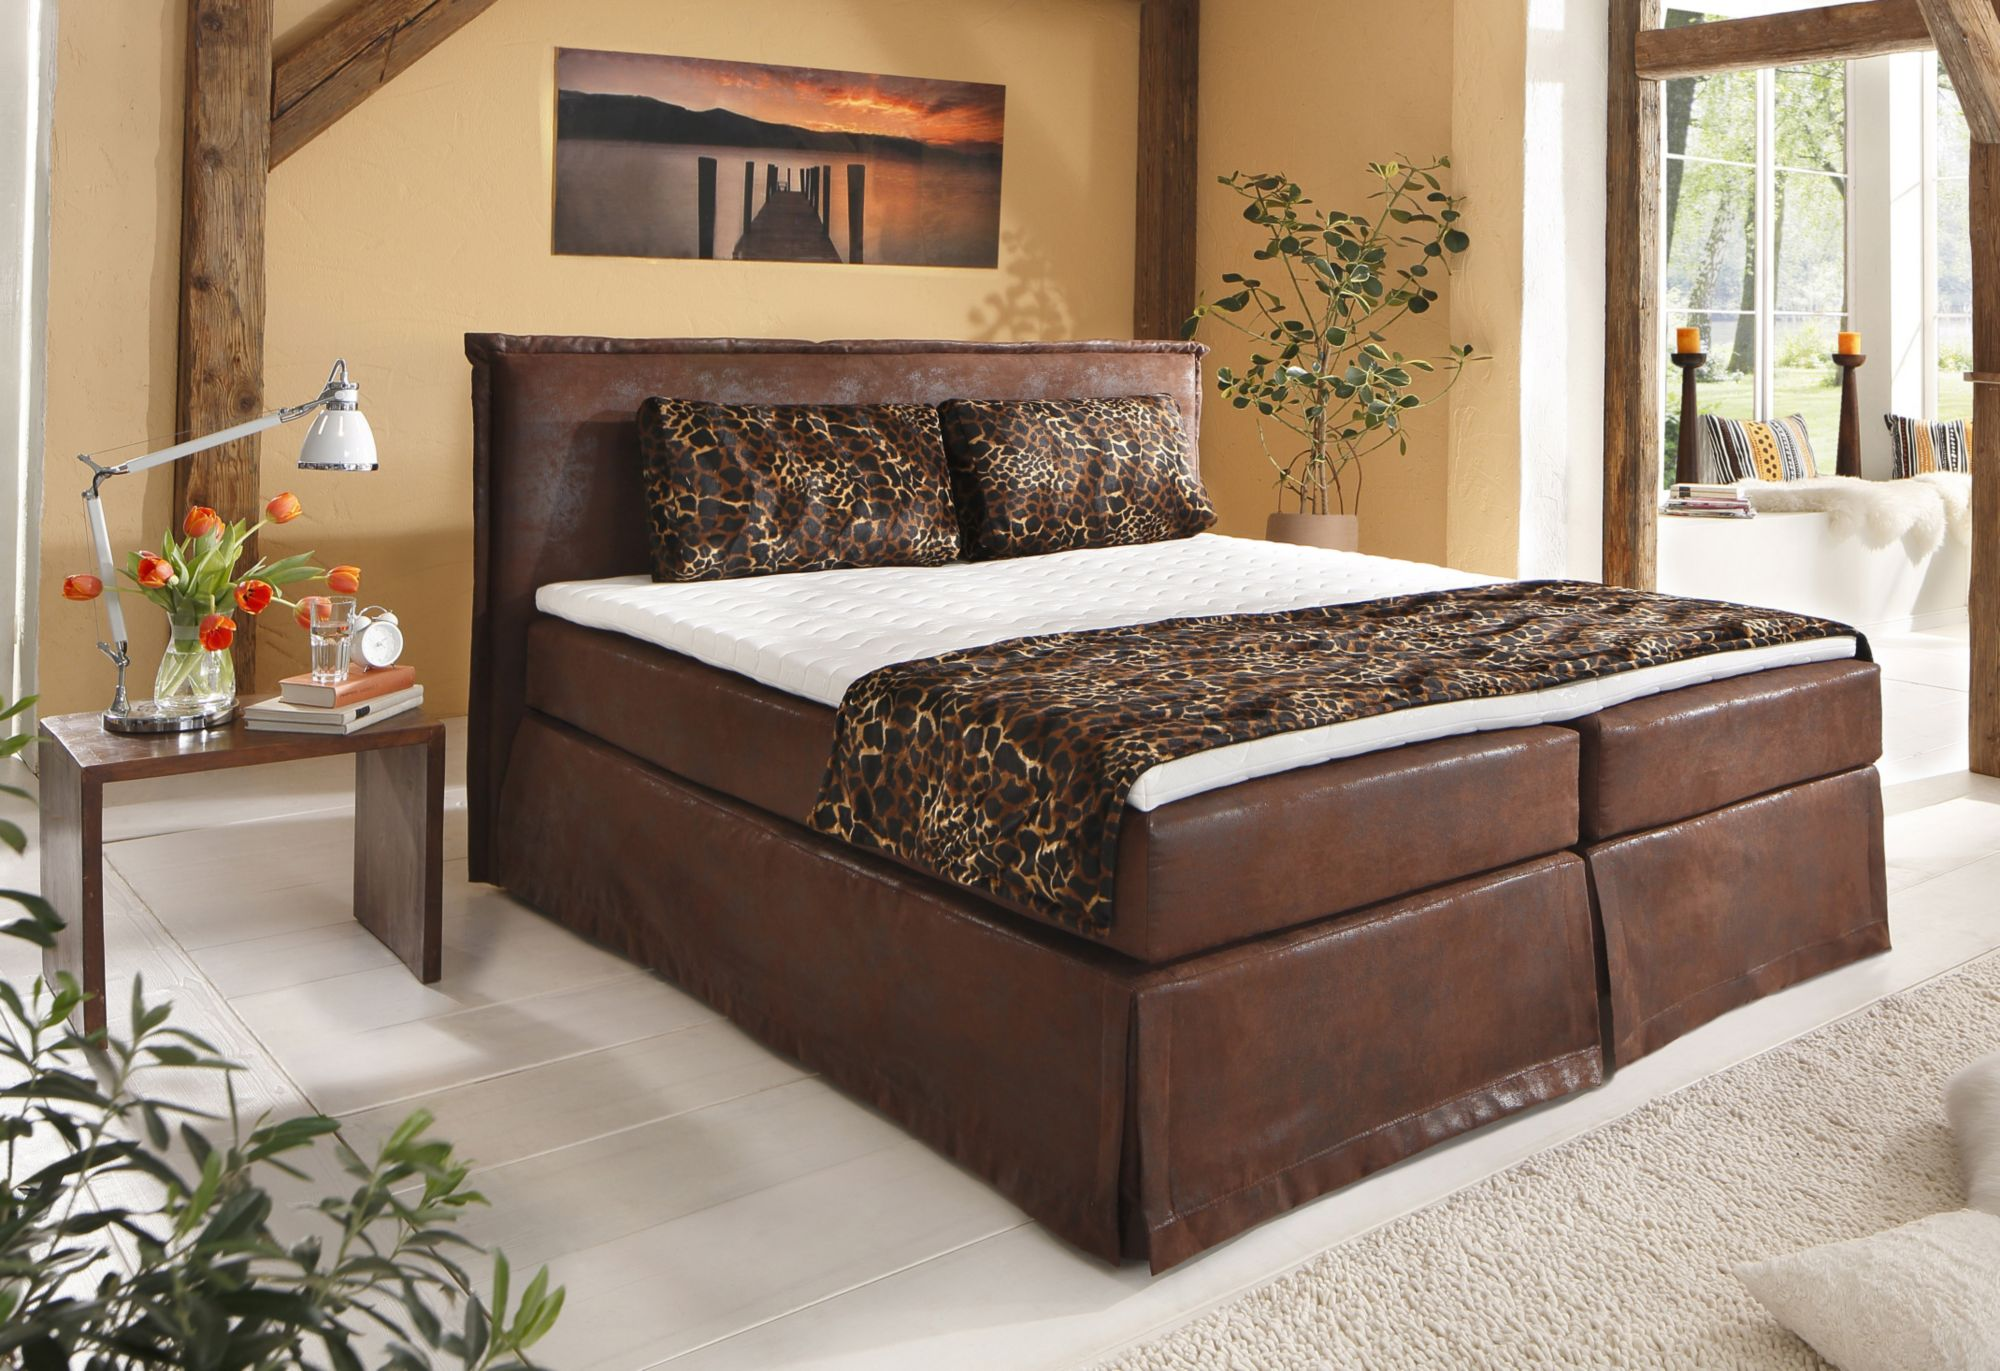 boxspringbett inkl topper home affaire brighton schwab versand bettgestelle. Black Bedroom Furniture Sets. Home Design Ideas